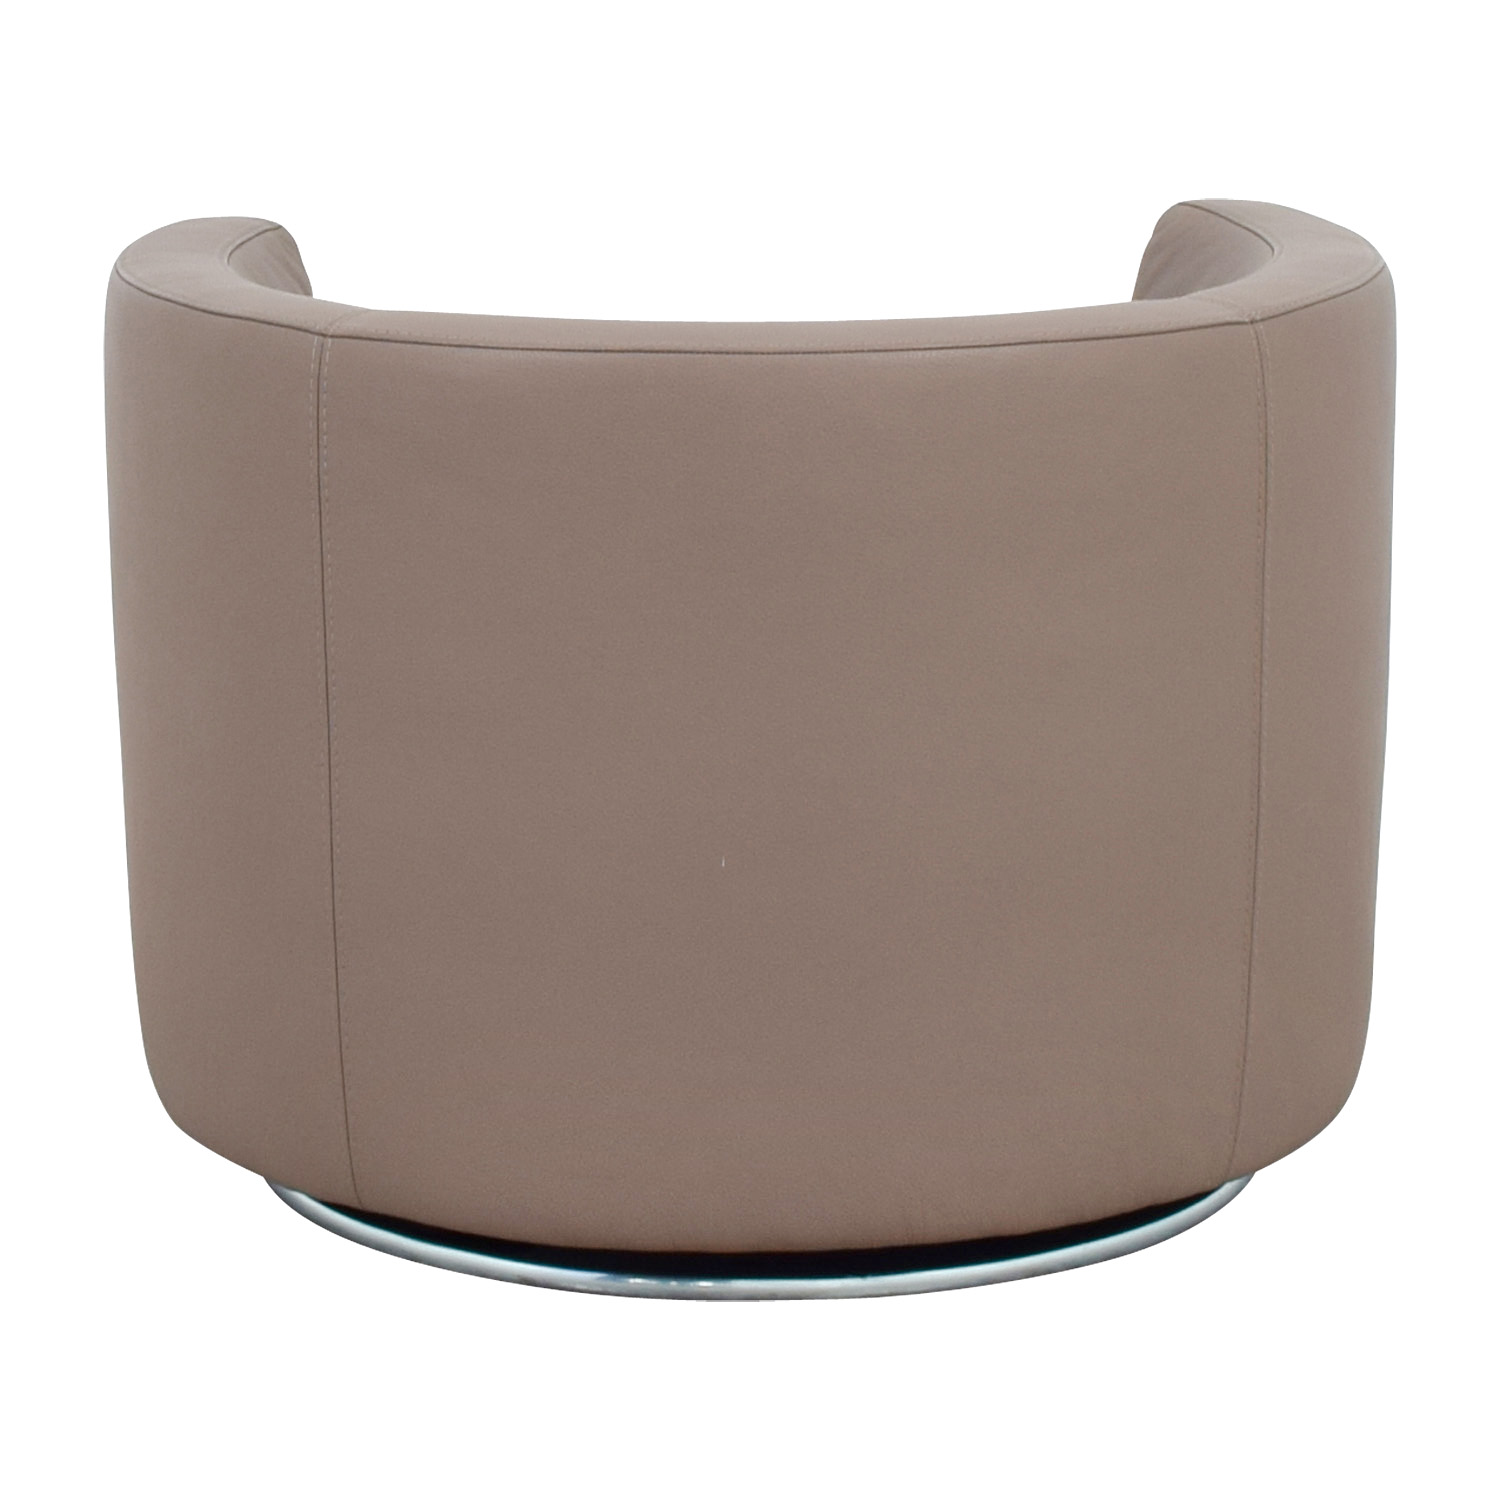 Roche Bobois Tan Leather Swivel Chair sale